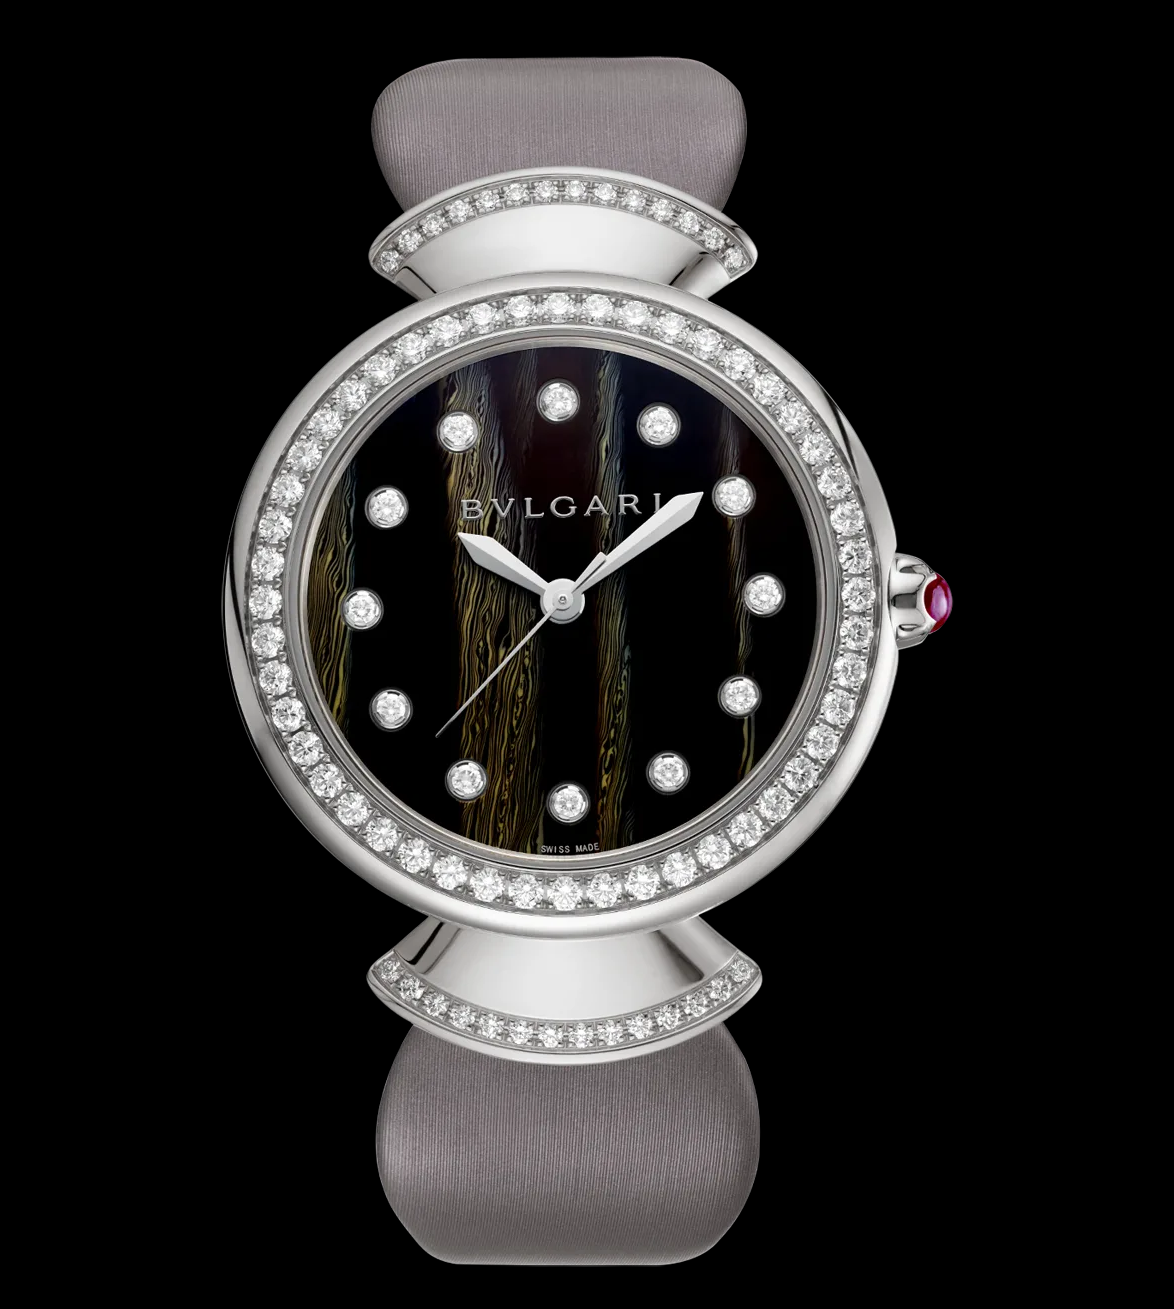 BEST WOMEN'S Bling WATCHES 2021 White Gold Case Set with Brilliant-Cut Diamonds, Black Dial, Diamond Indexes and Grey Satin Bracelet Strap